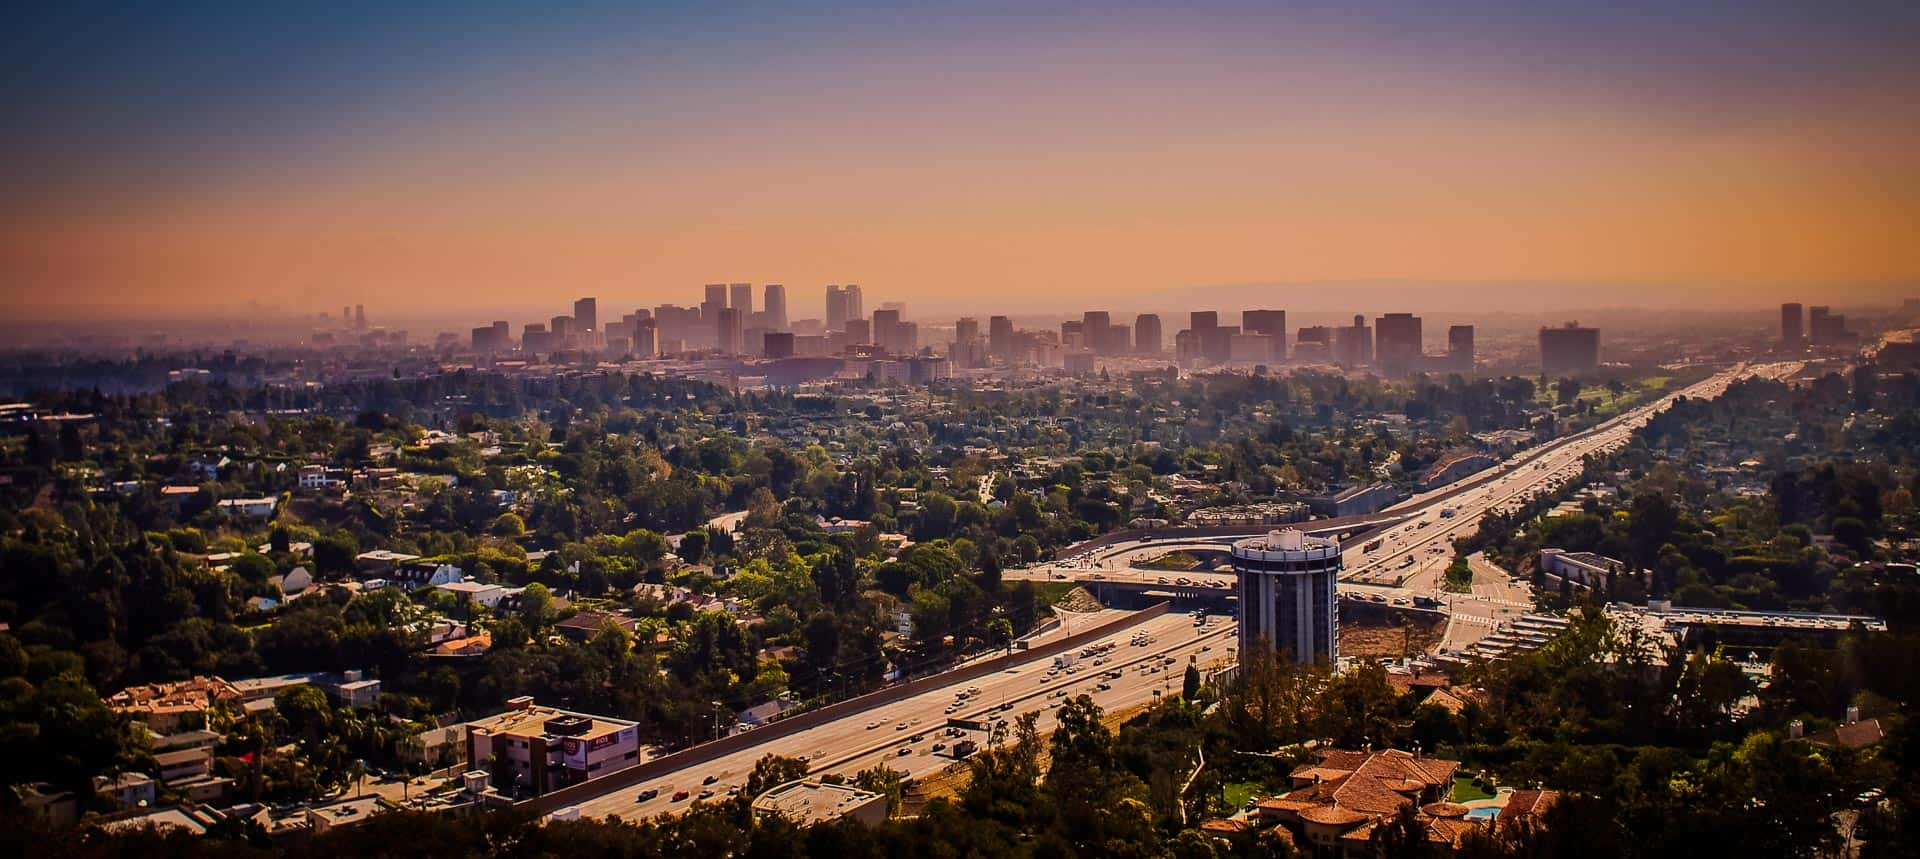 Los Angeles California Road Trip Photography